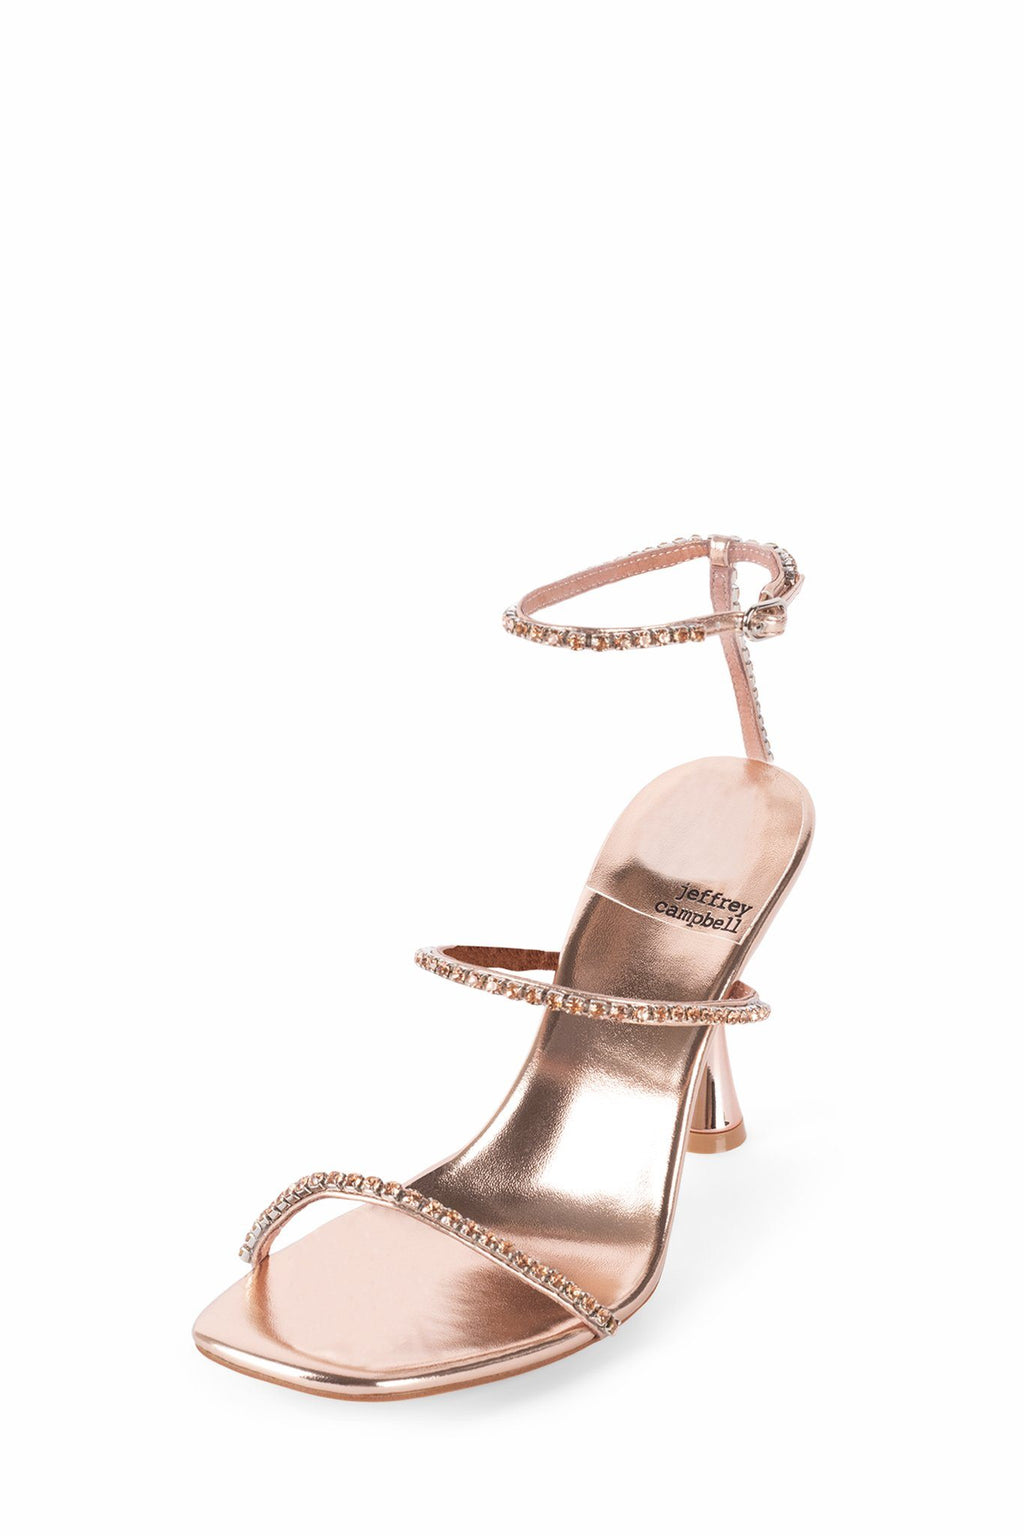 DEMONICA Heeled Sandal ST